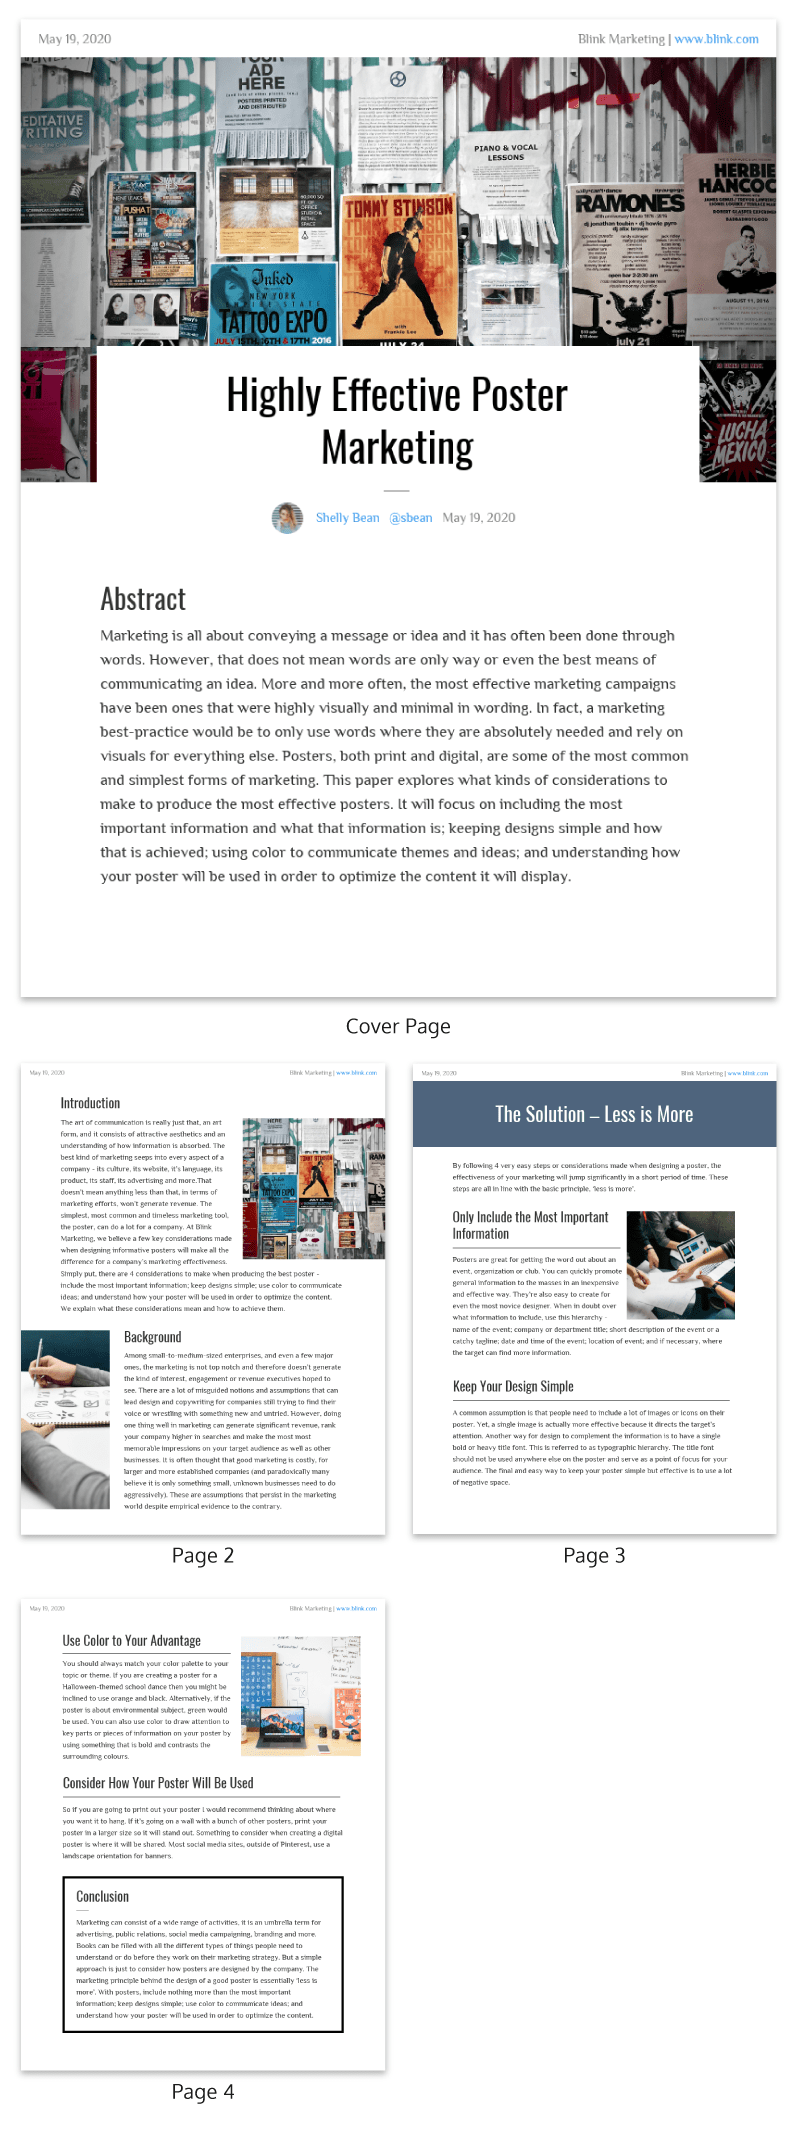 Modern Poster Marketing White Paper Examples